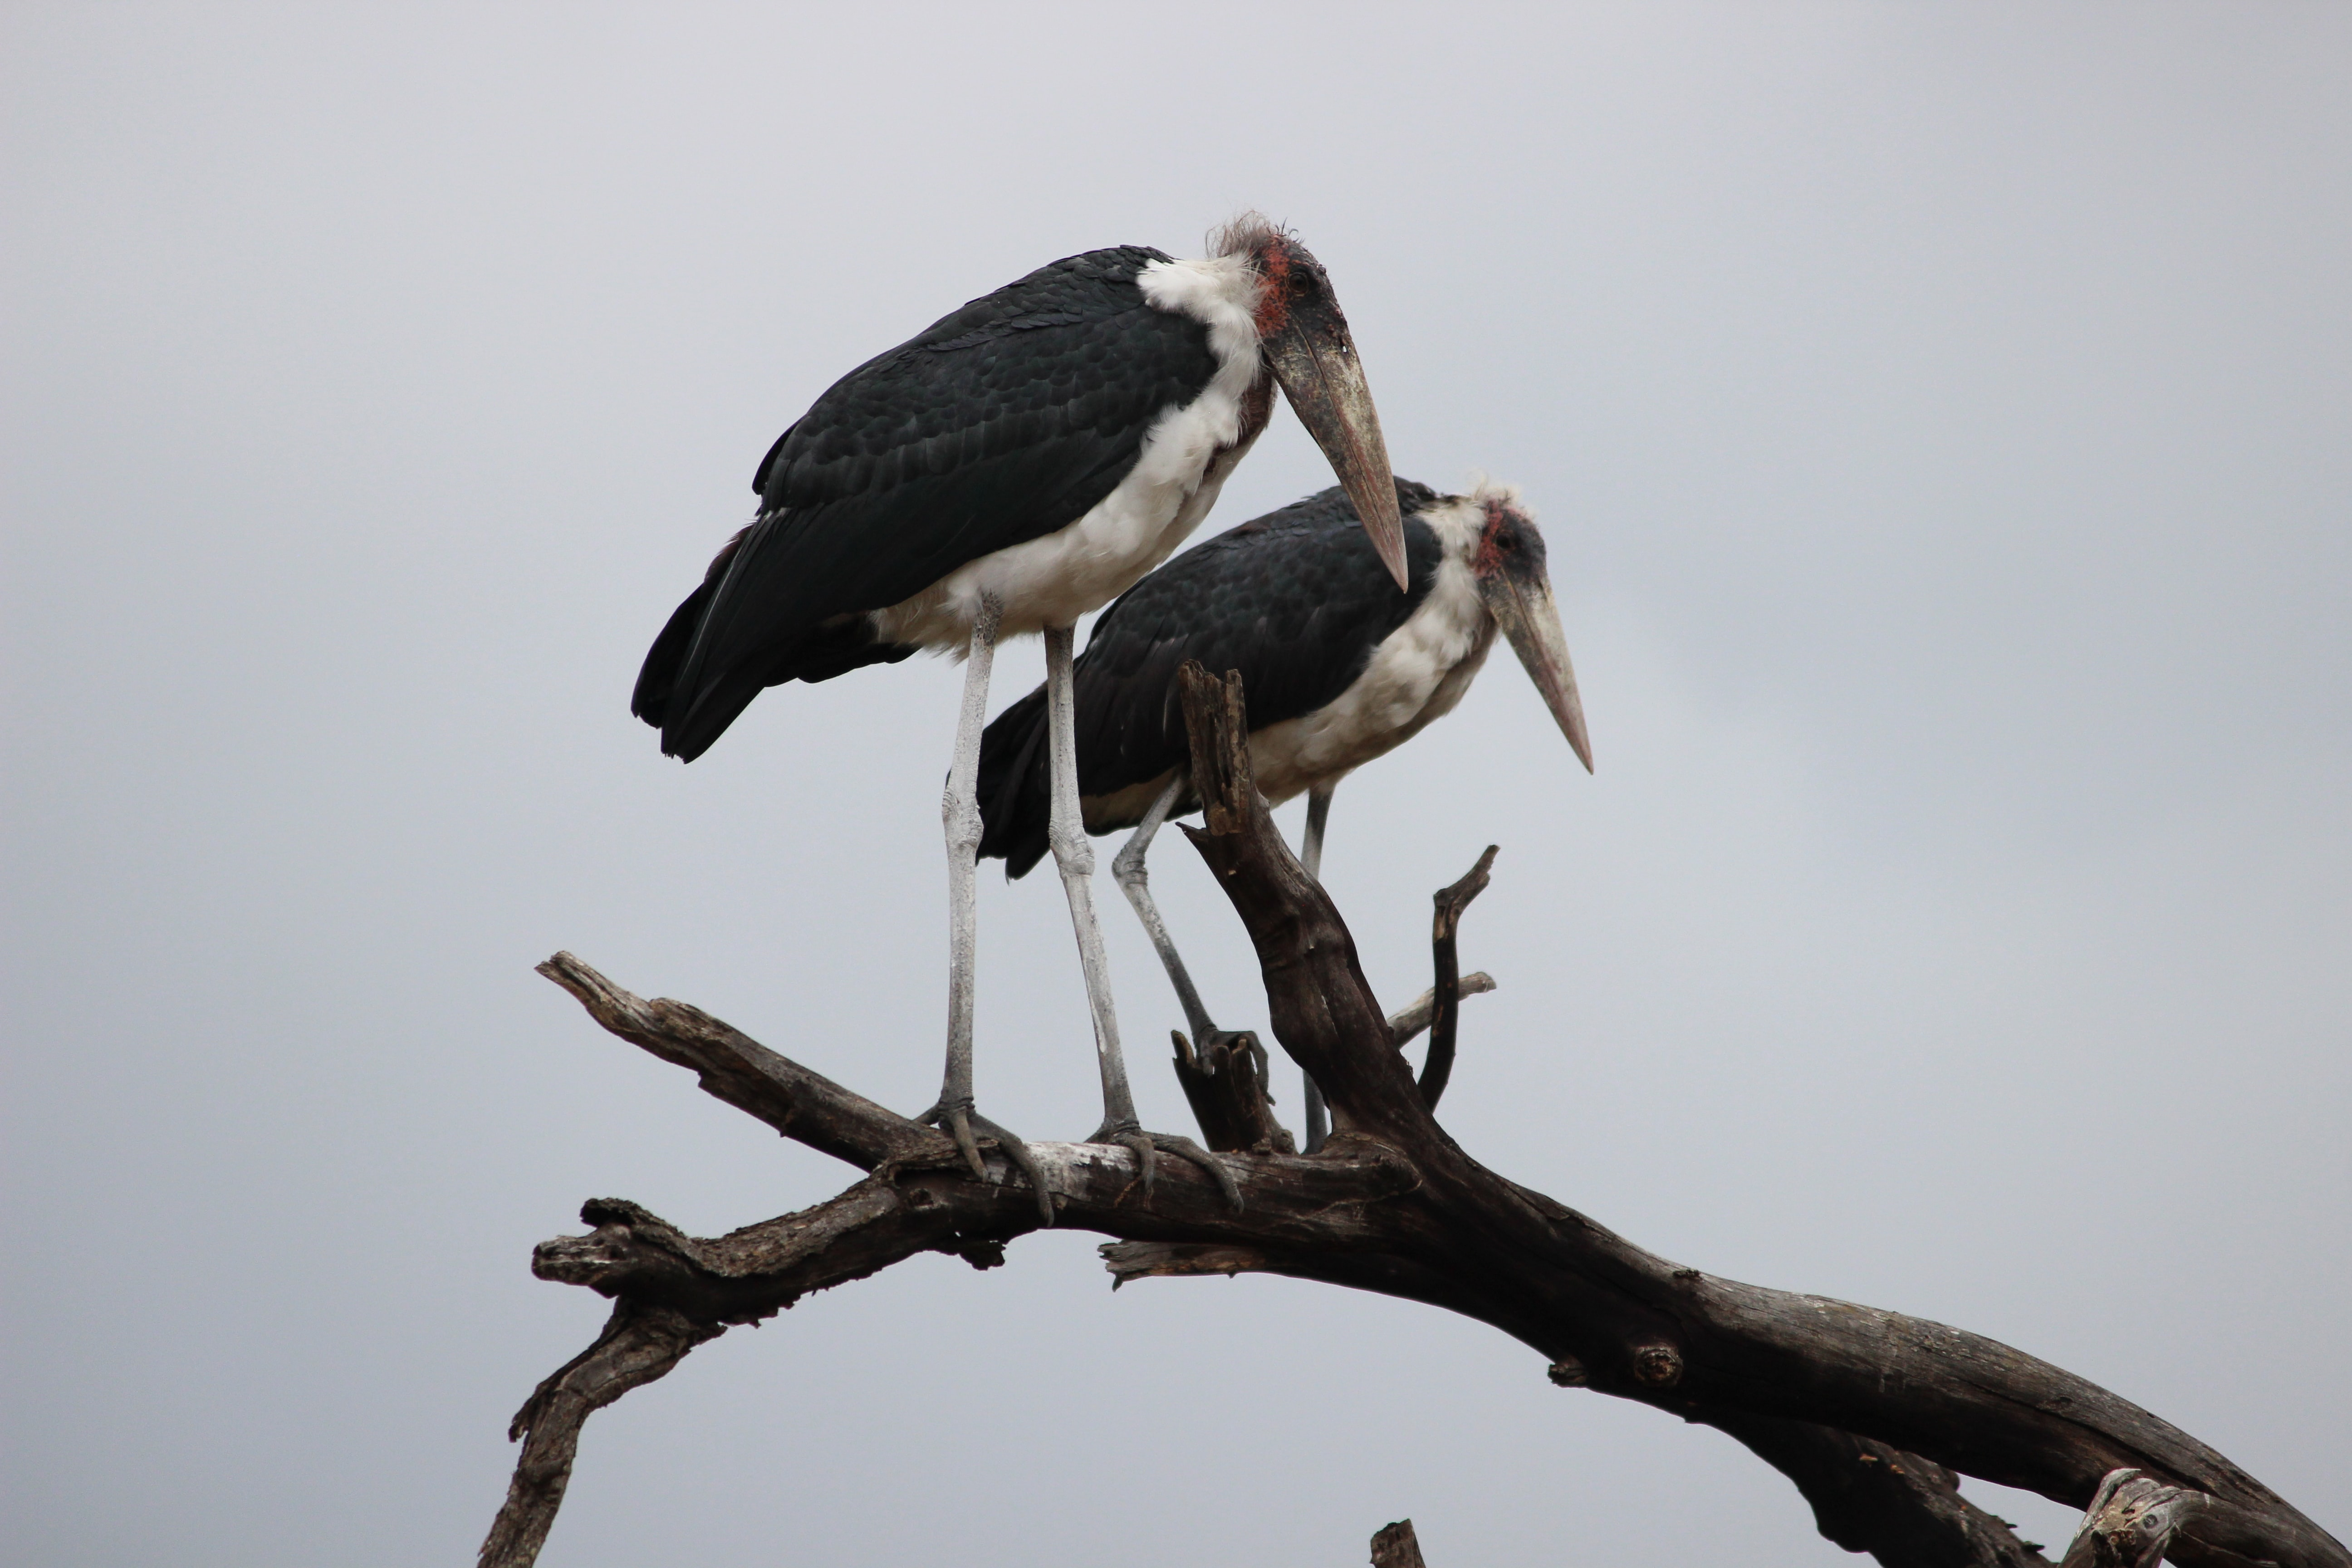 two black-and-white birds on tree under cloudy skies